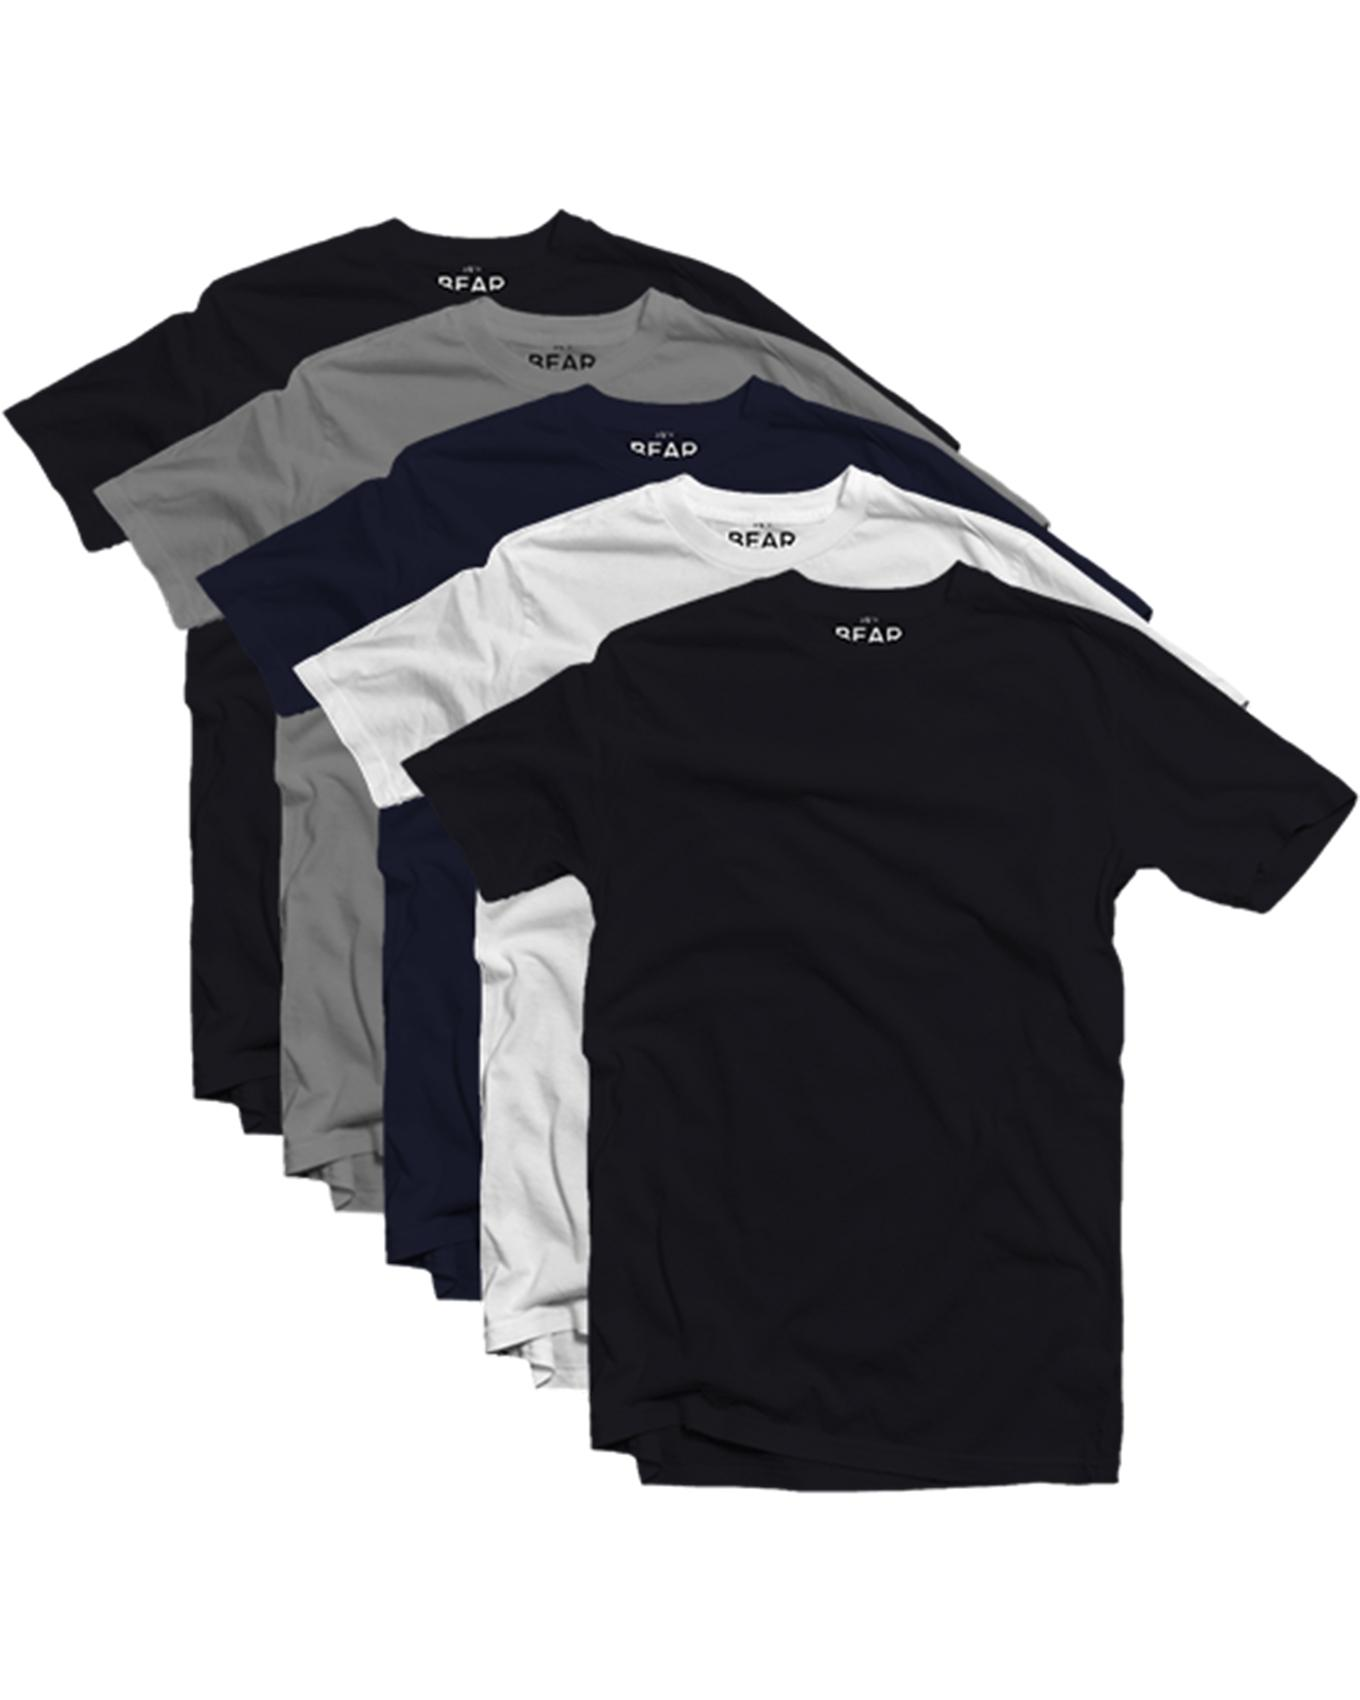 Men's Crew Neck T-shirts - 5 Pack